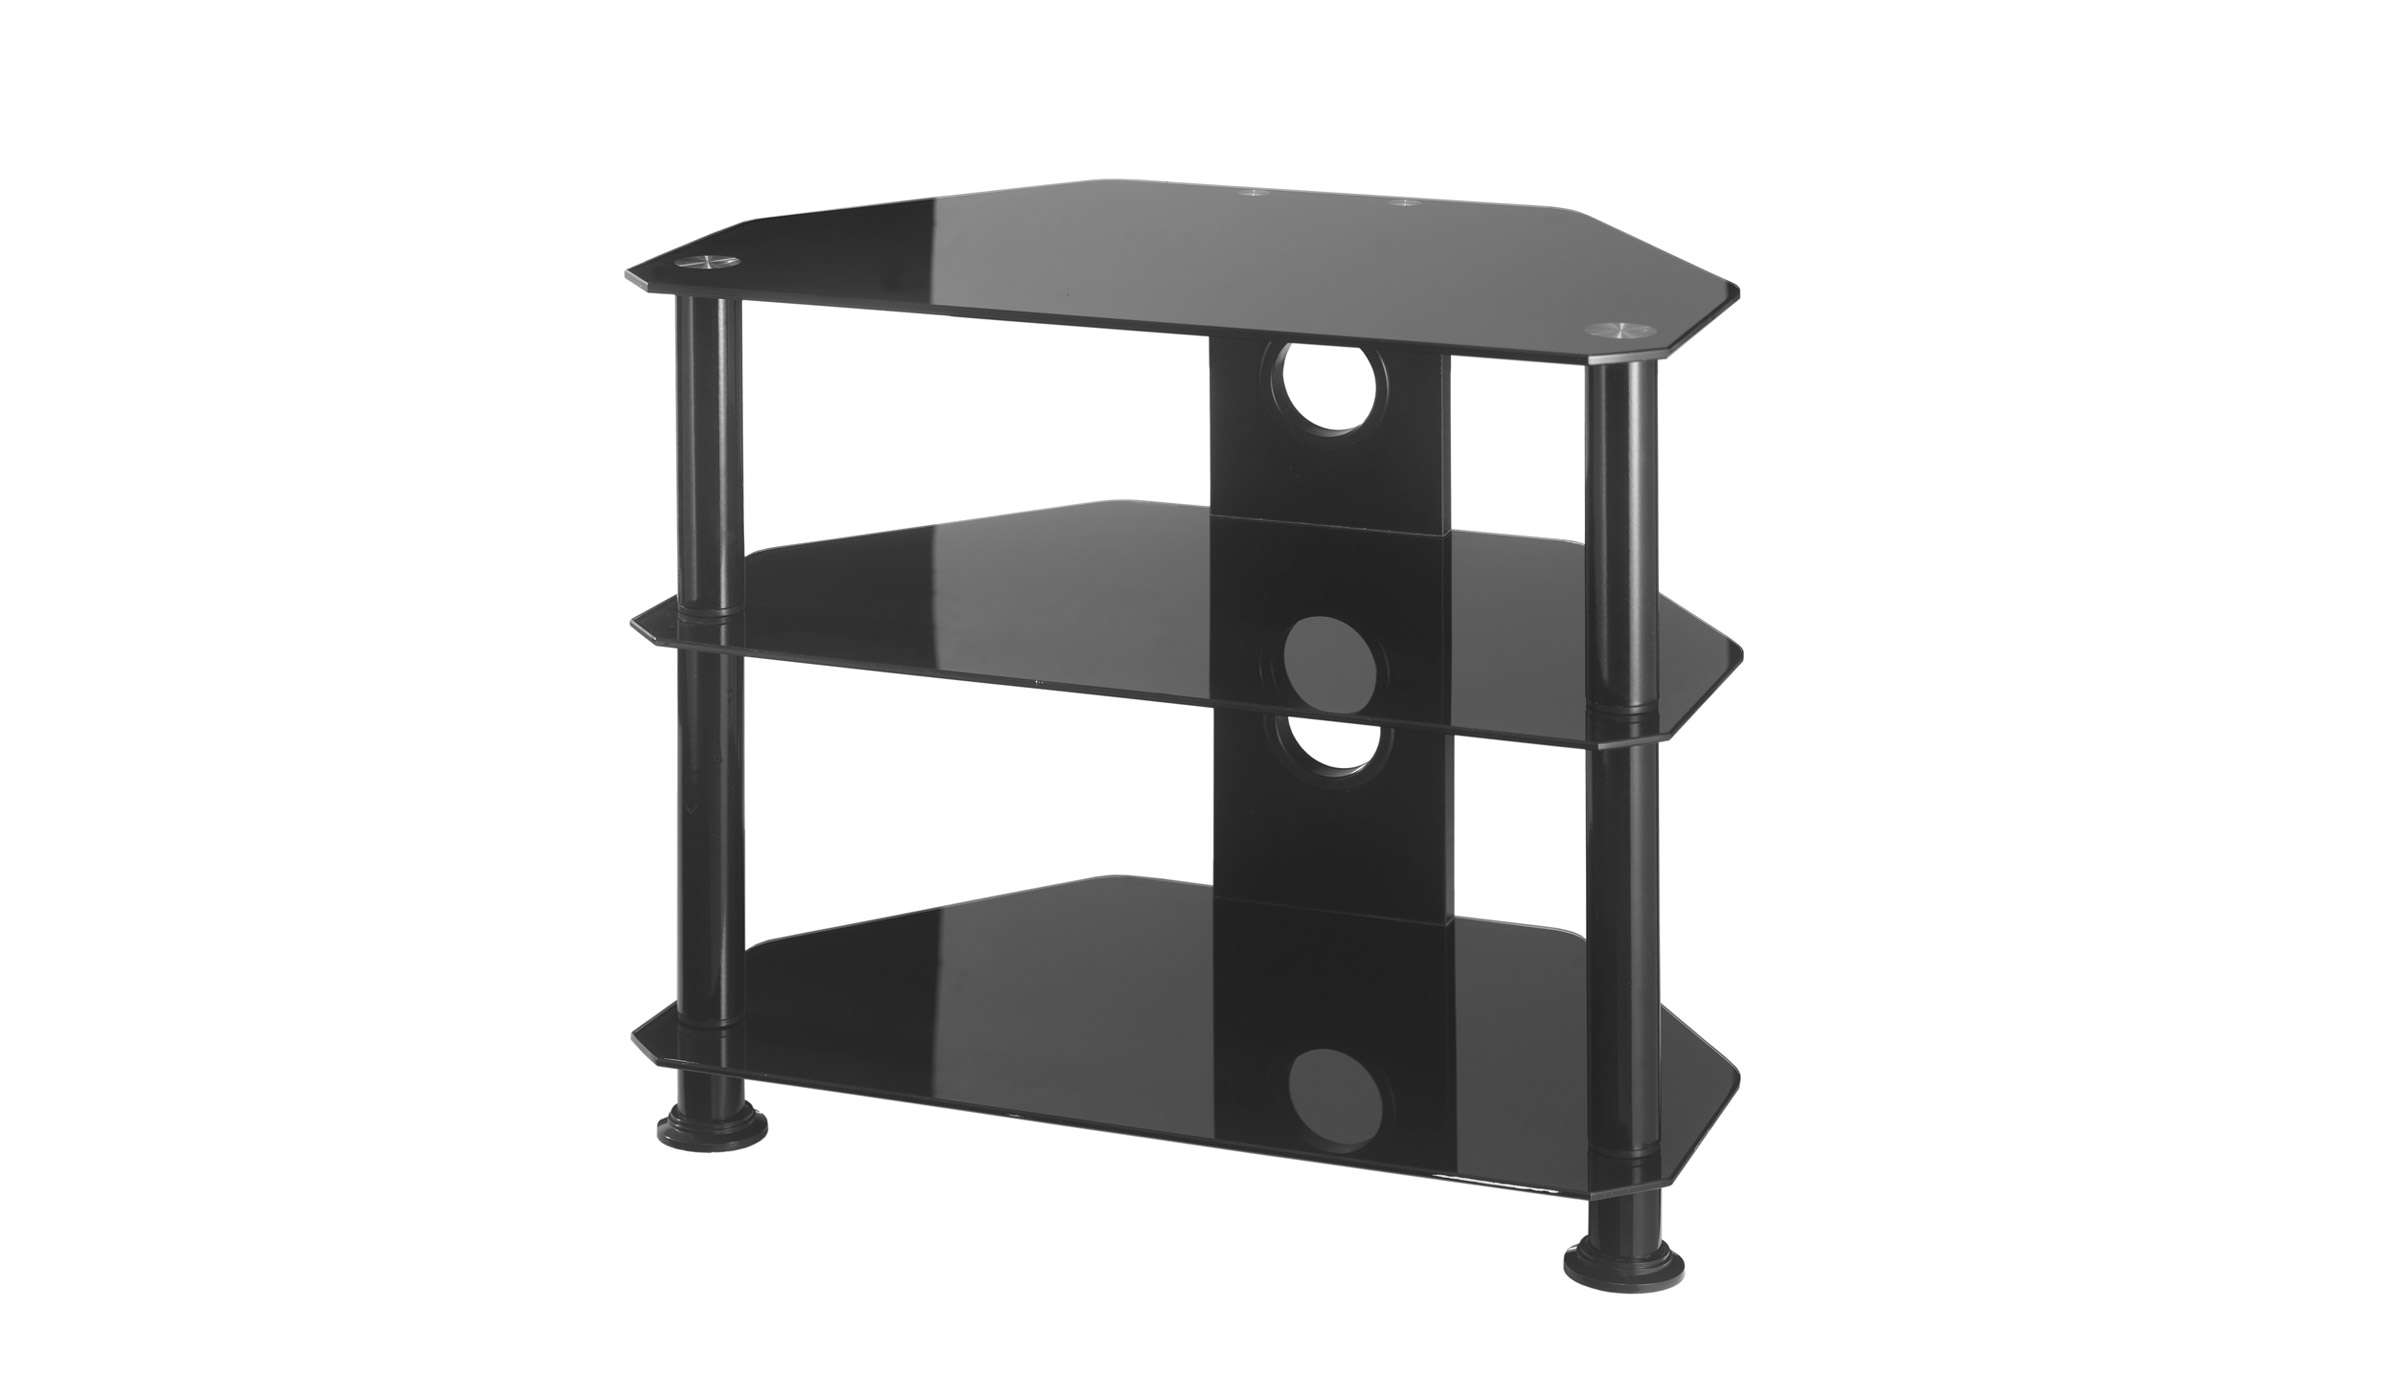 Small Glass Corner Tv Stand Up To 26 Inch Tv | Mmt Db600 Pertaining To Small Corner Tv Cabinets (View 6 of 20)